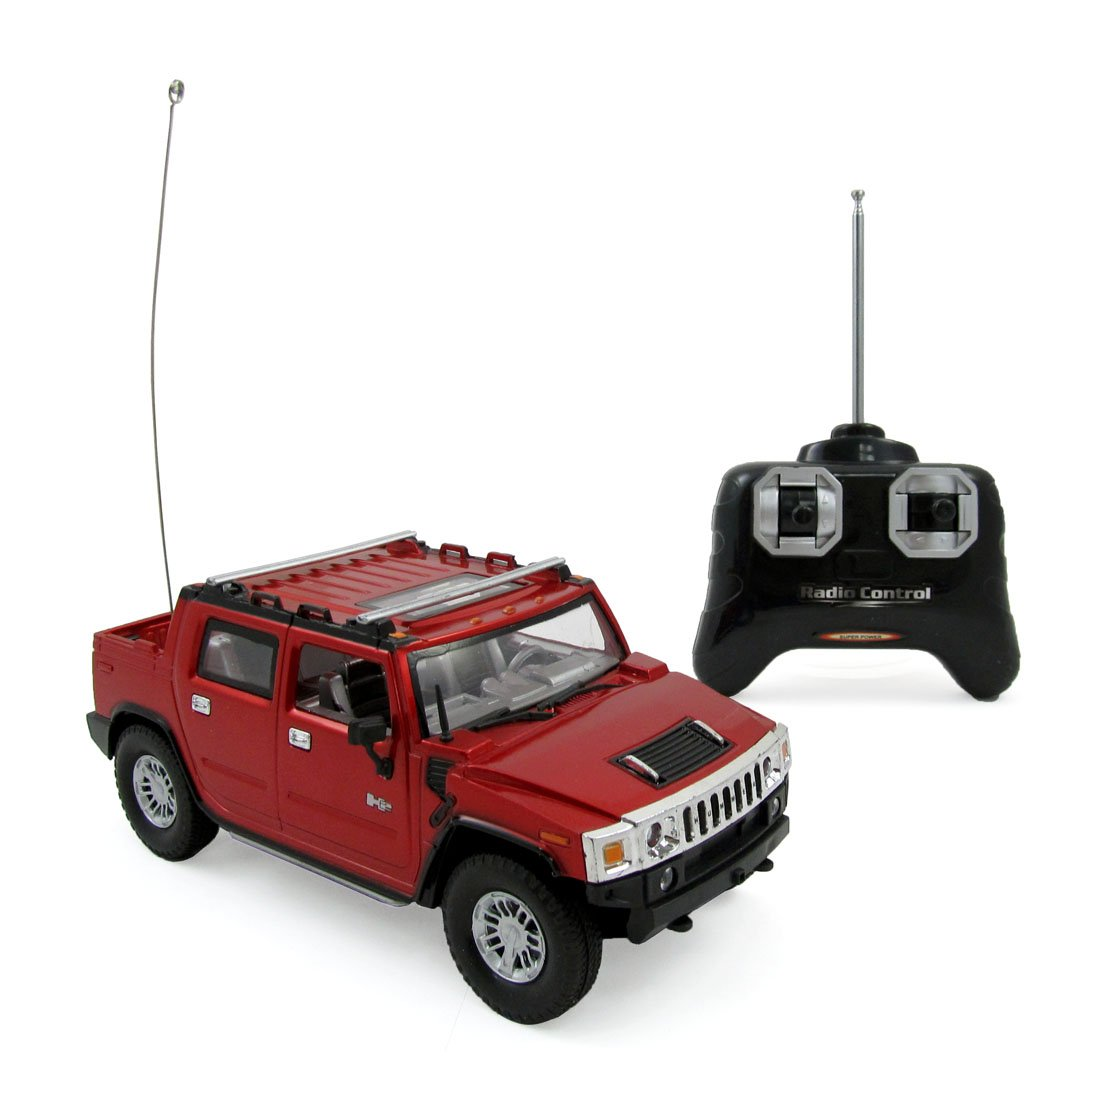 Liberty Imports Hummer H2 Suv Full Function R C Radio And Are More Functional Than A Basic 4 Or 5 Channel Rc Transmitter Remote Control Car 124 Scale Sut Red Blue Toys Games